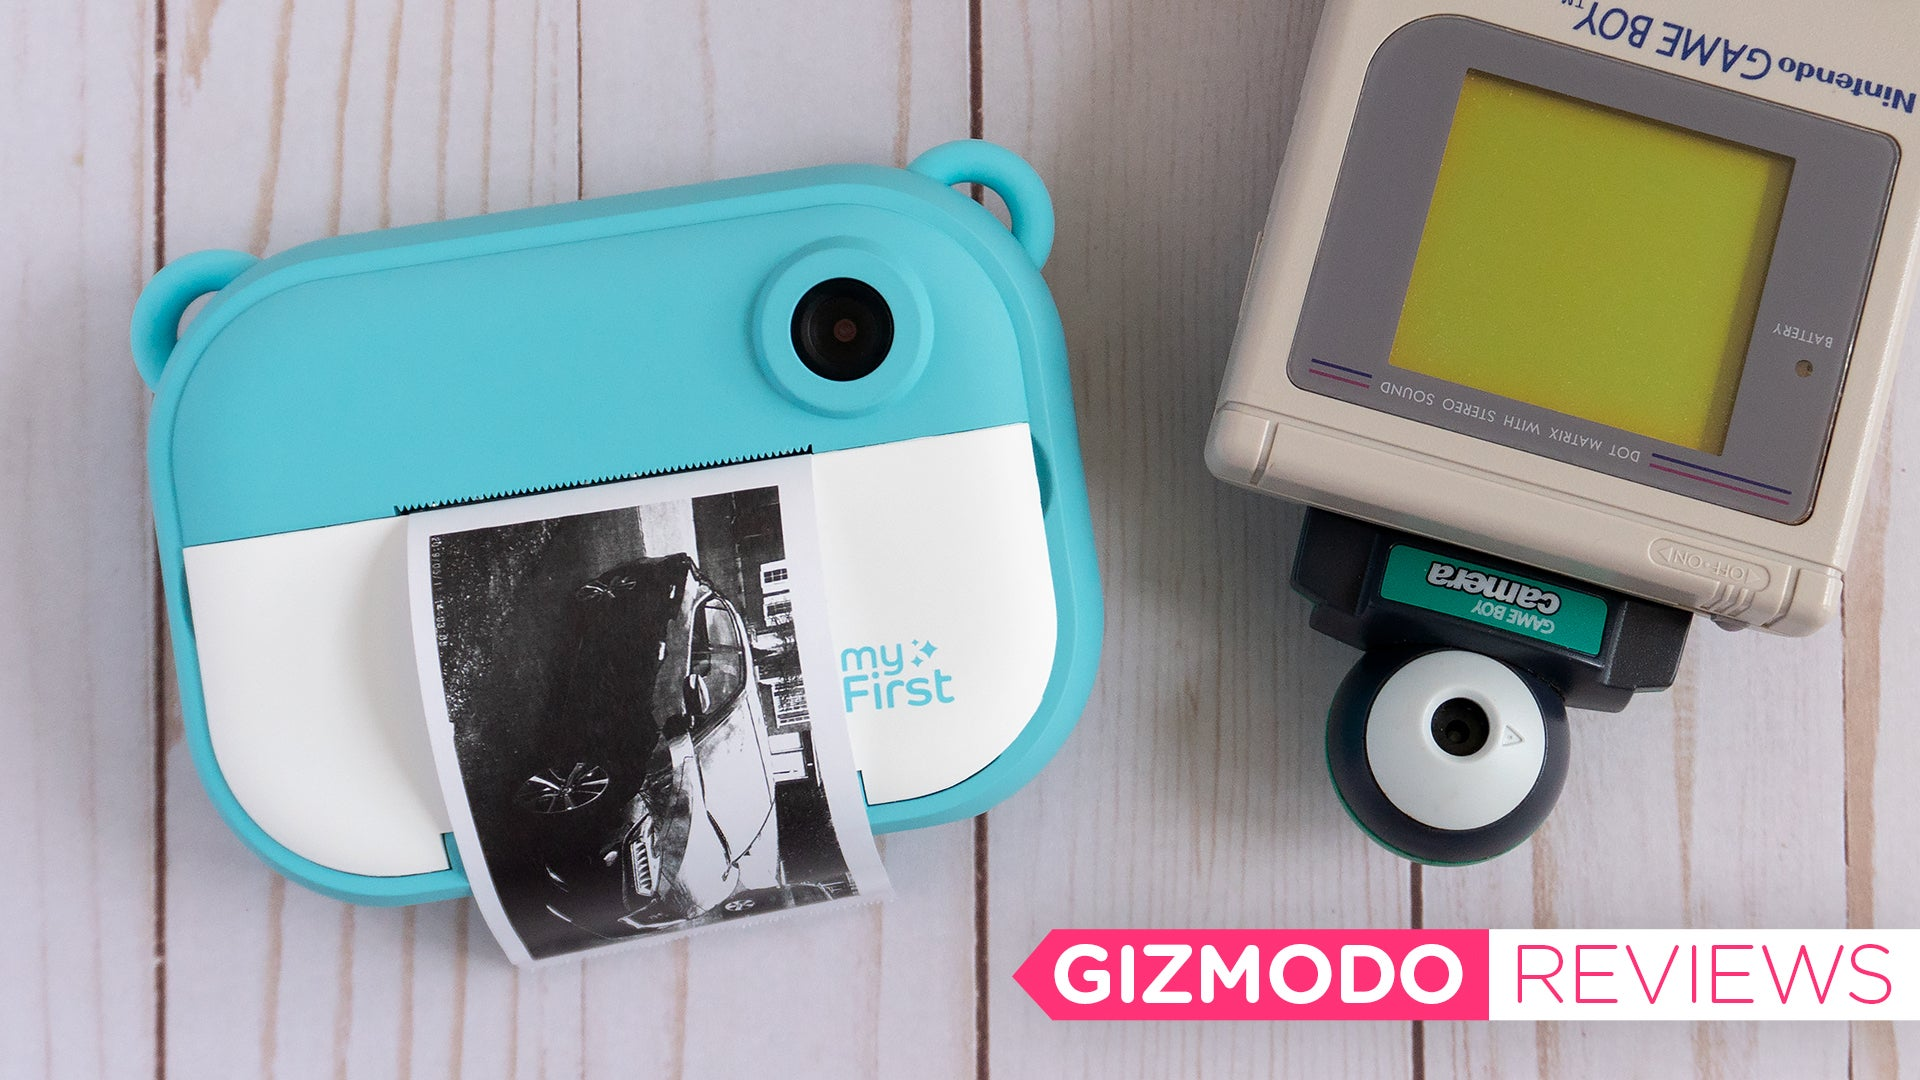 This Instant Camera Prints On Cheap Thermal Paper And Reminds Me Of My Beloved Game Boy Camera